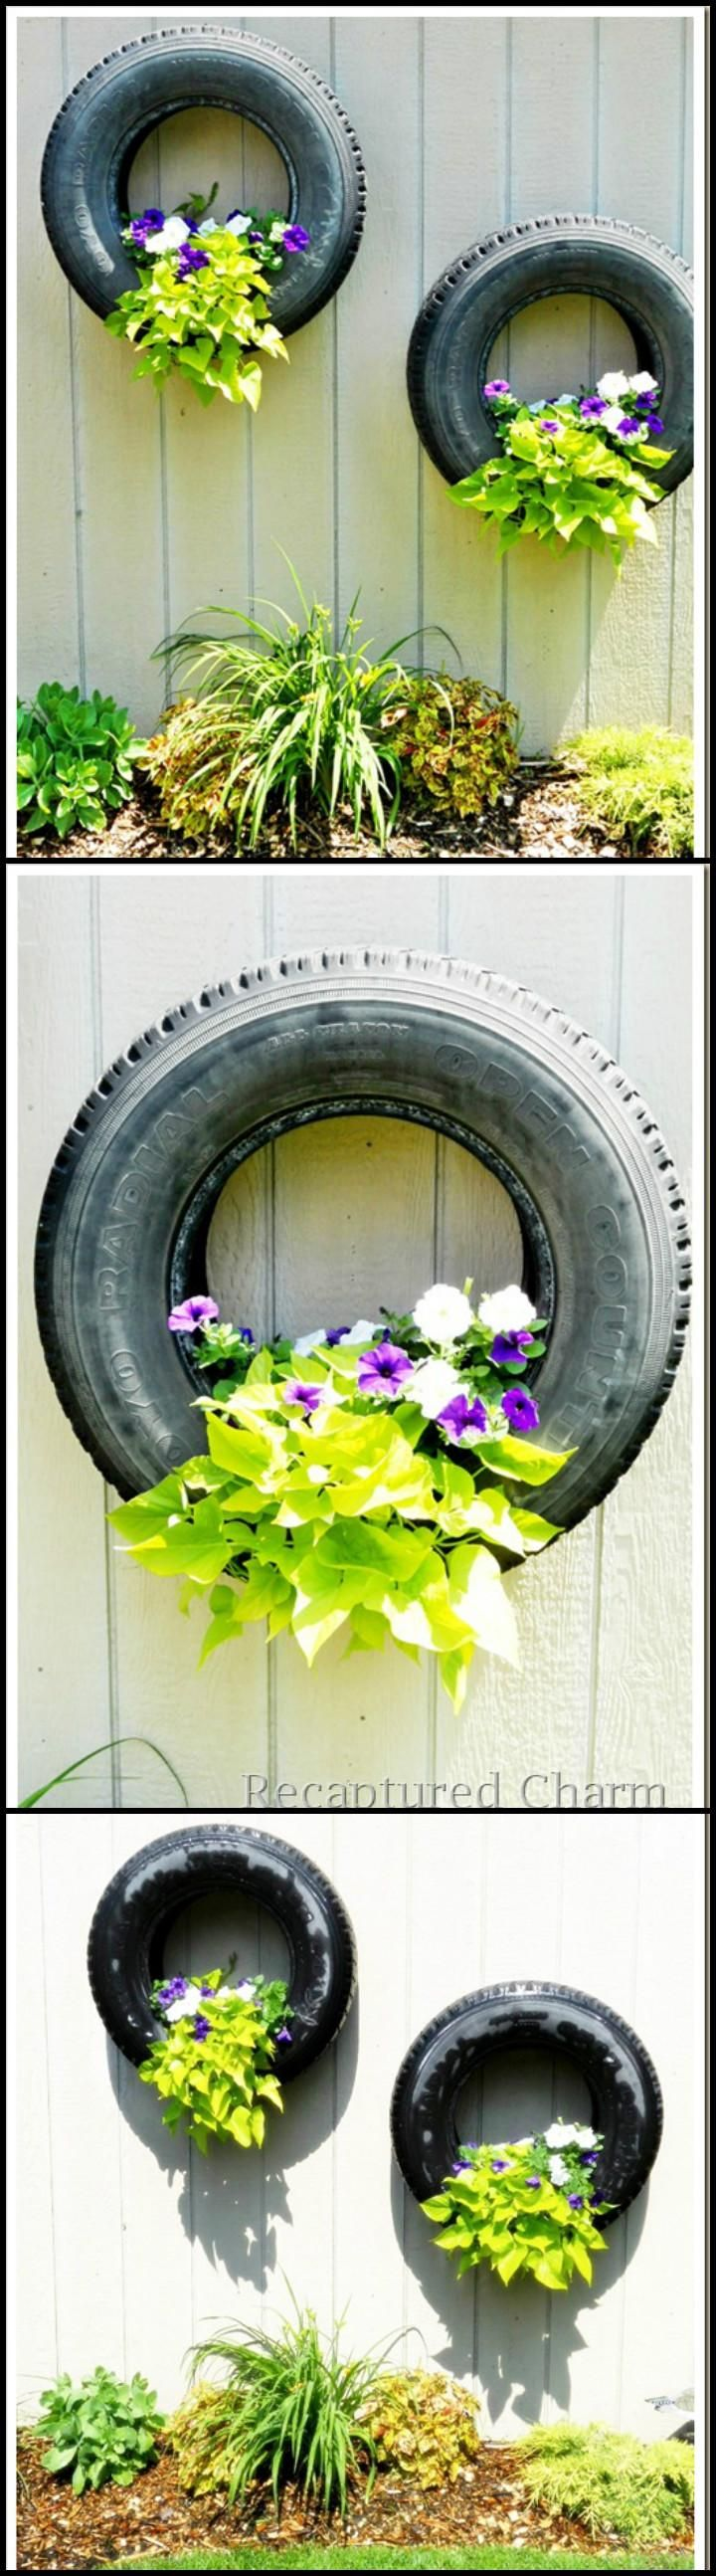 Old Tire Planters for Garden Fence - 25+ DIY Fence Decorating Ideas & Projects - Page 4 of 5 - DIY & Crafts